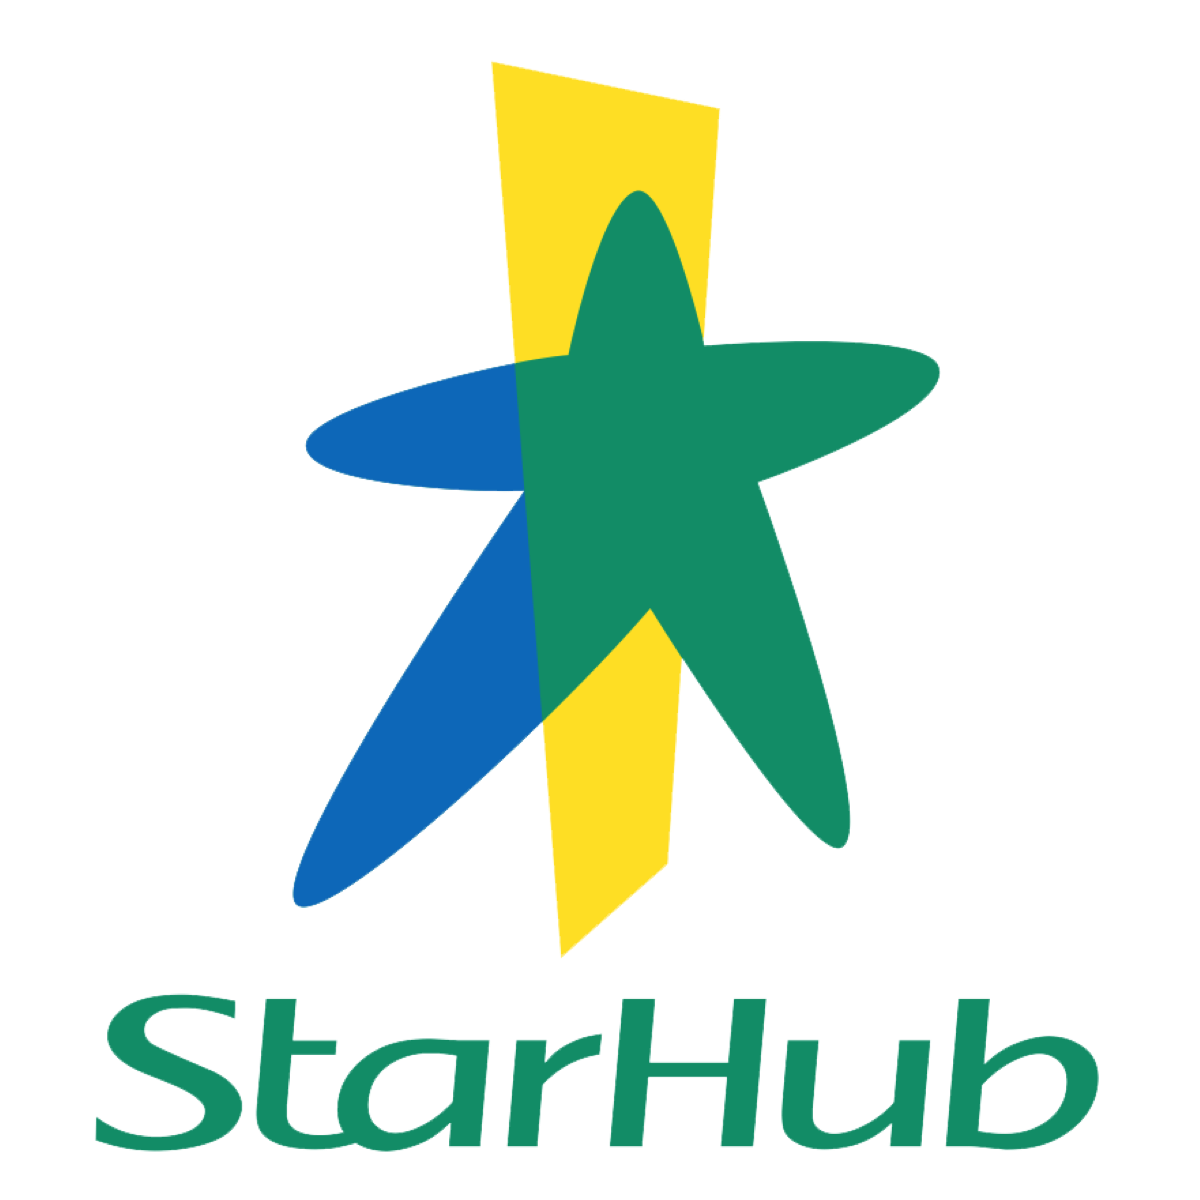 StarHub (STH SP) - UOB Kay Hian 2017-10-12: Bulking Up With Broader Capabilities